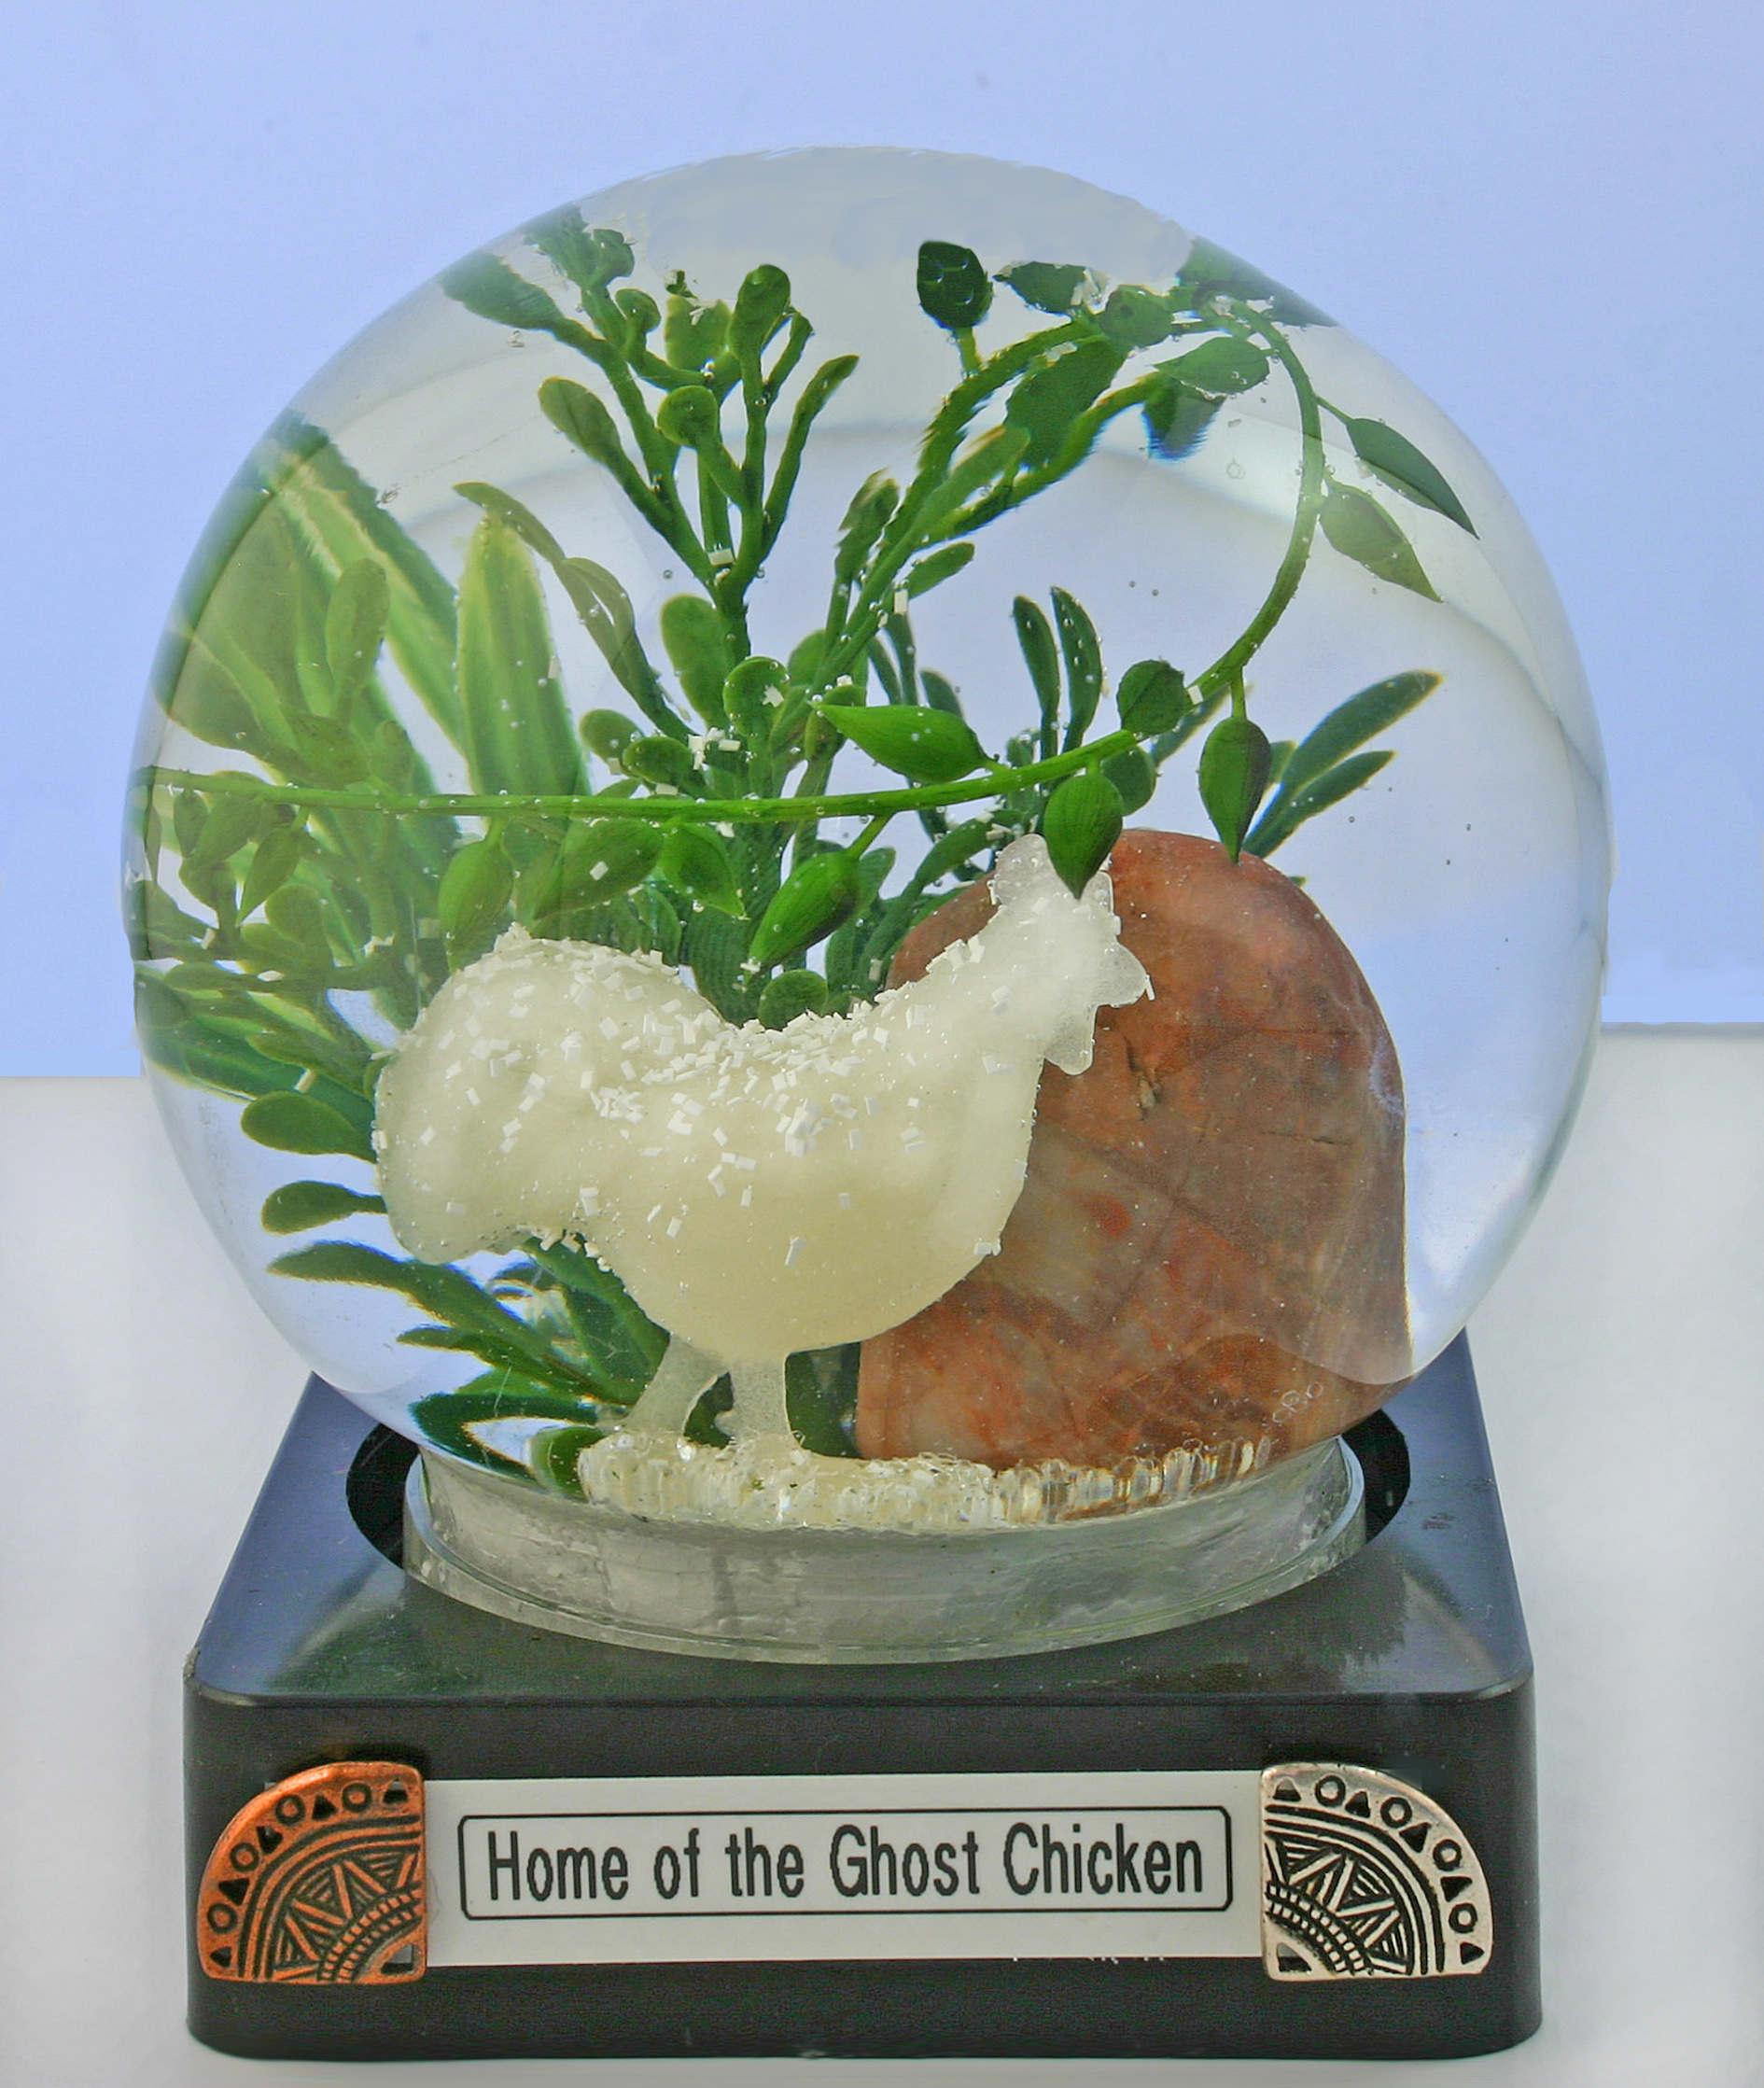 Home of the Ghost Chicken